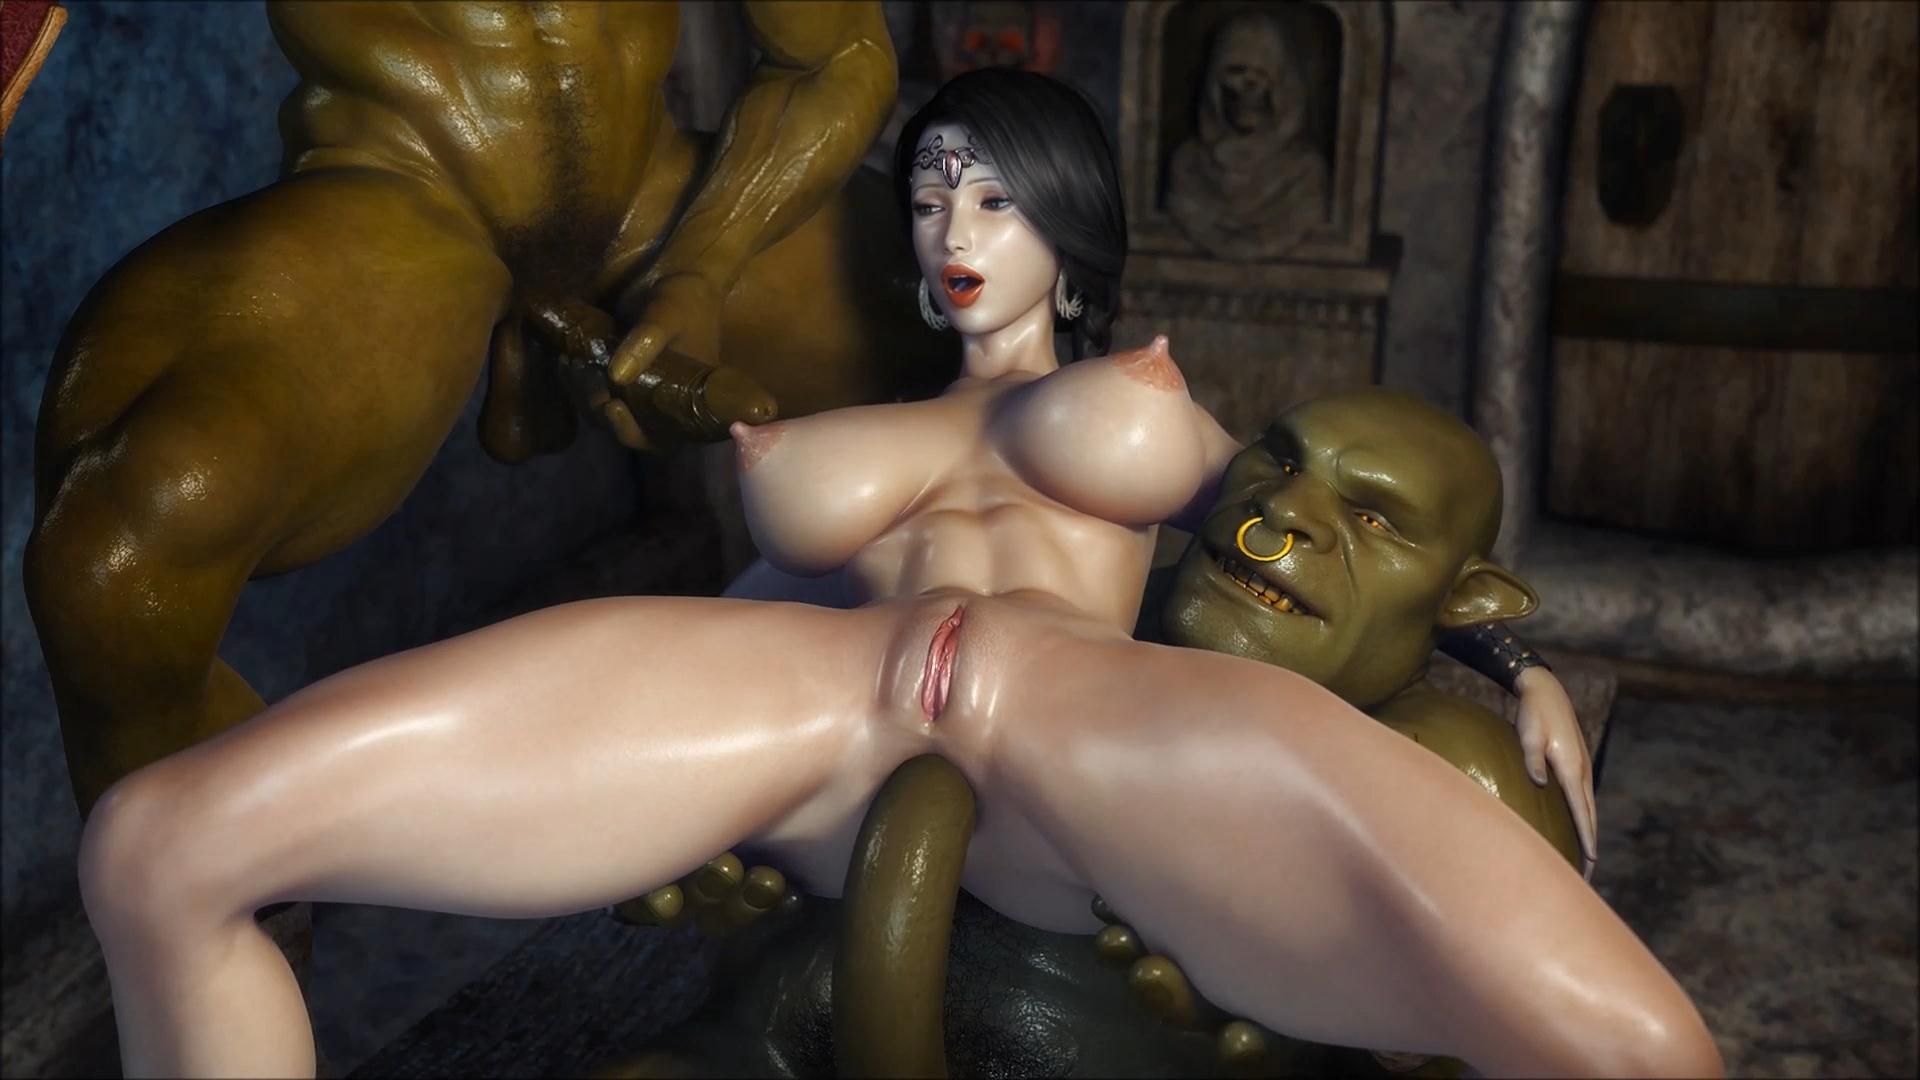 Download full animated monsterporn video for free  nude galleries